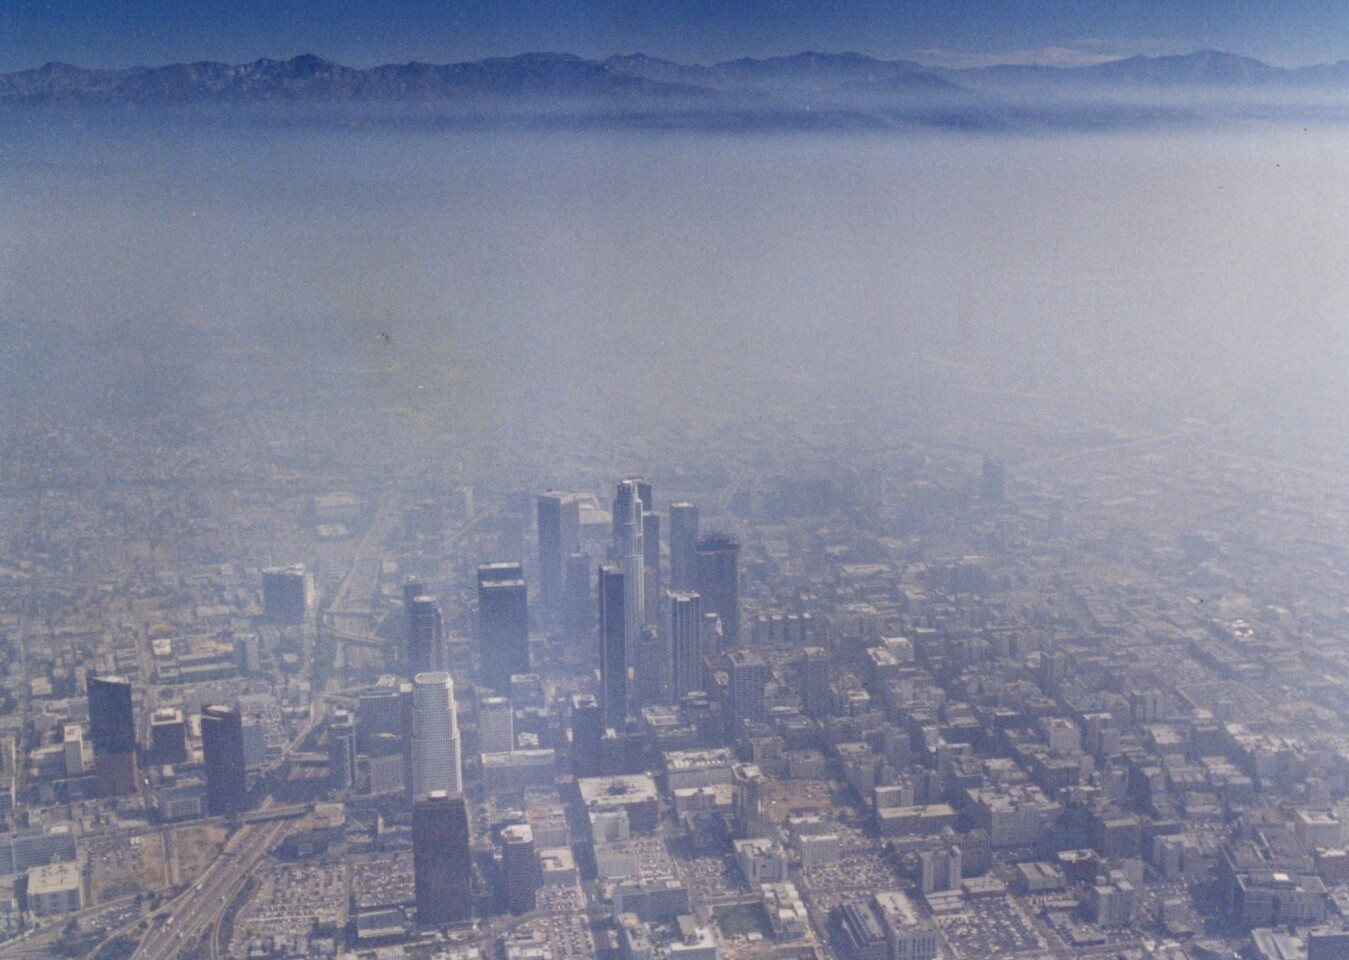 Aerial view of the downtown Los Angeles skyline covered in smog looking east towards the San Gabriel mountains in August 1990.